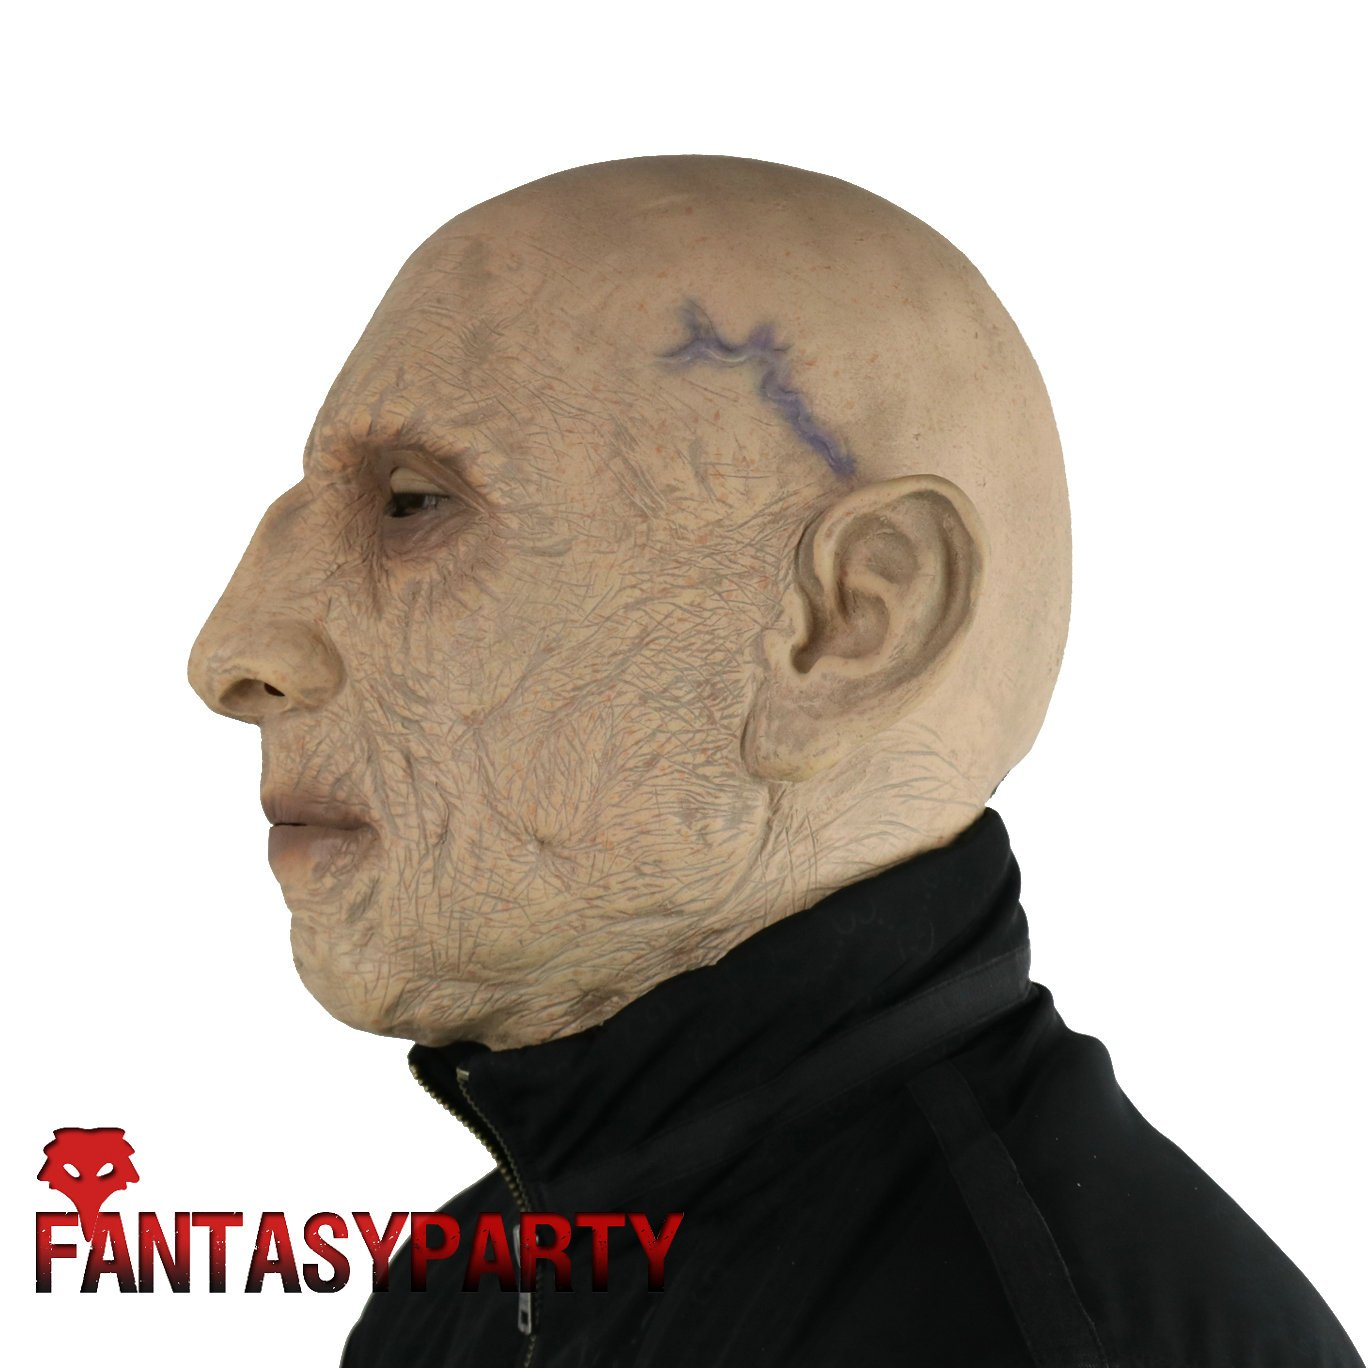 FantasyParty Music Festival Full Head Mask White